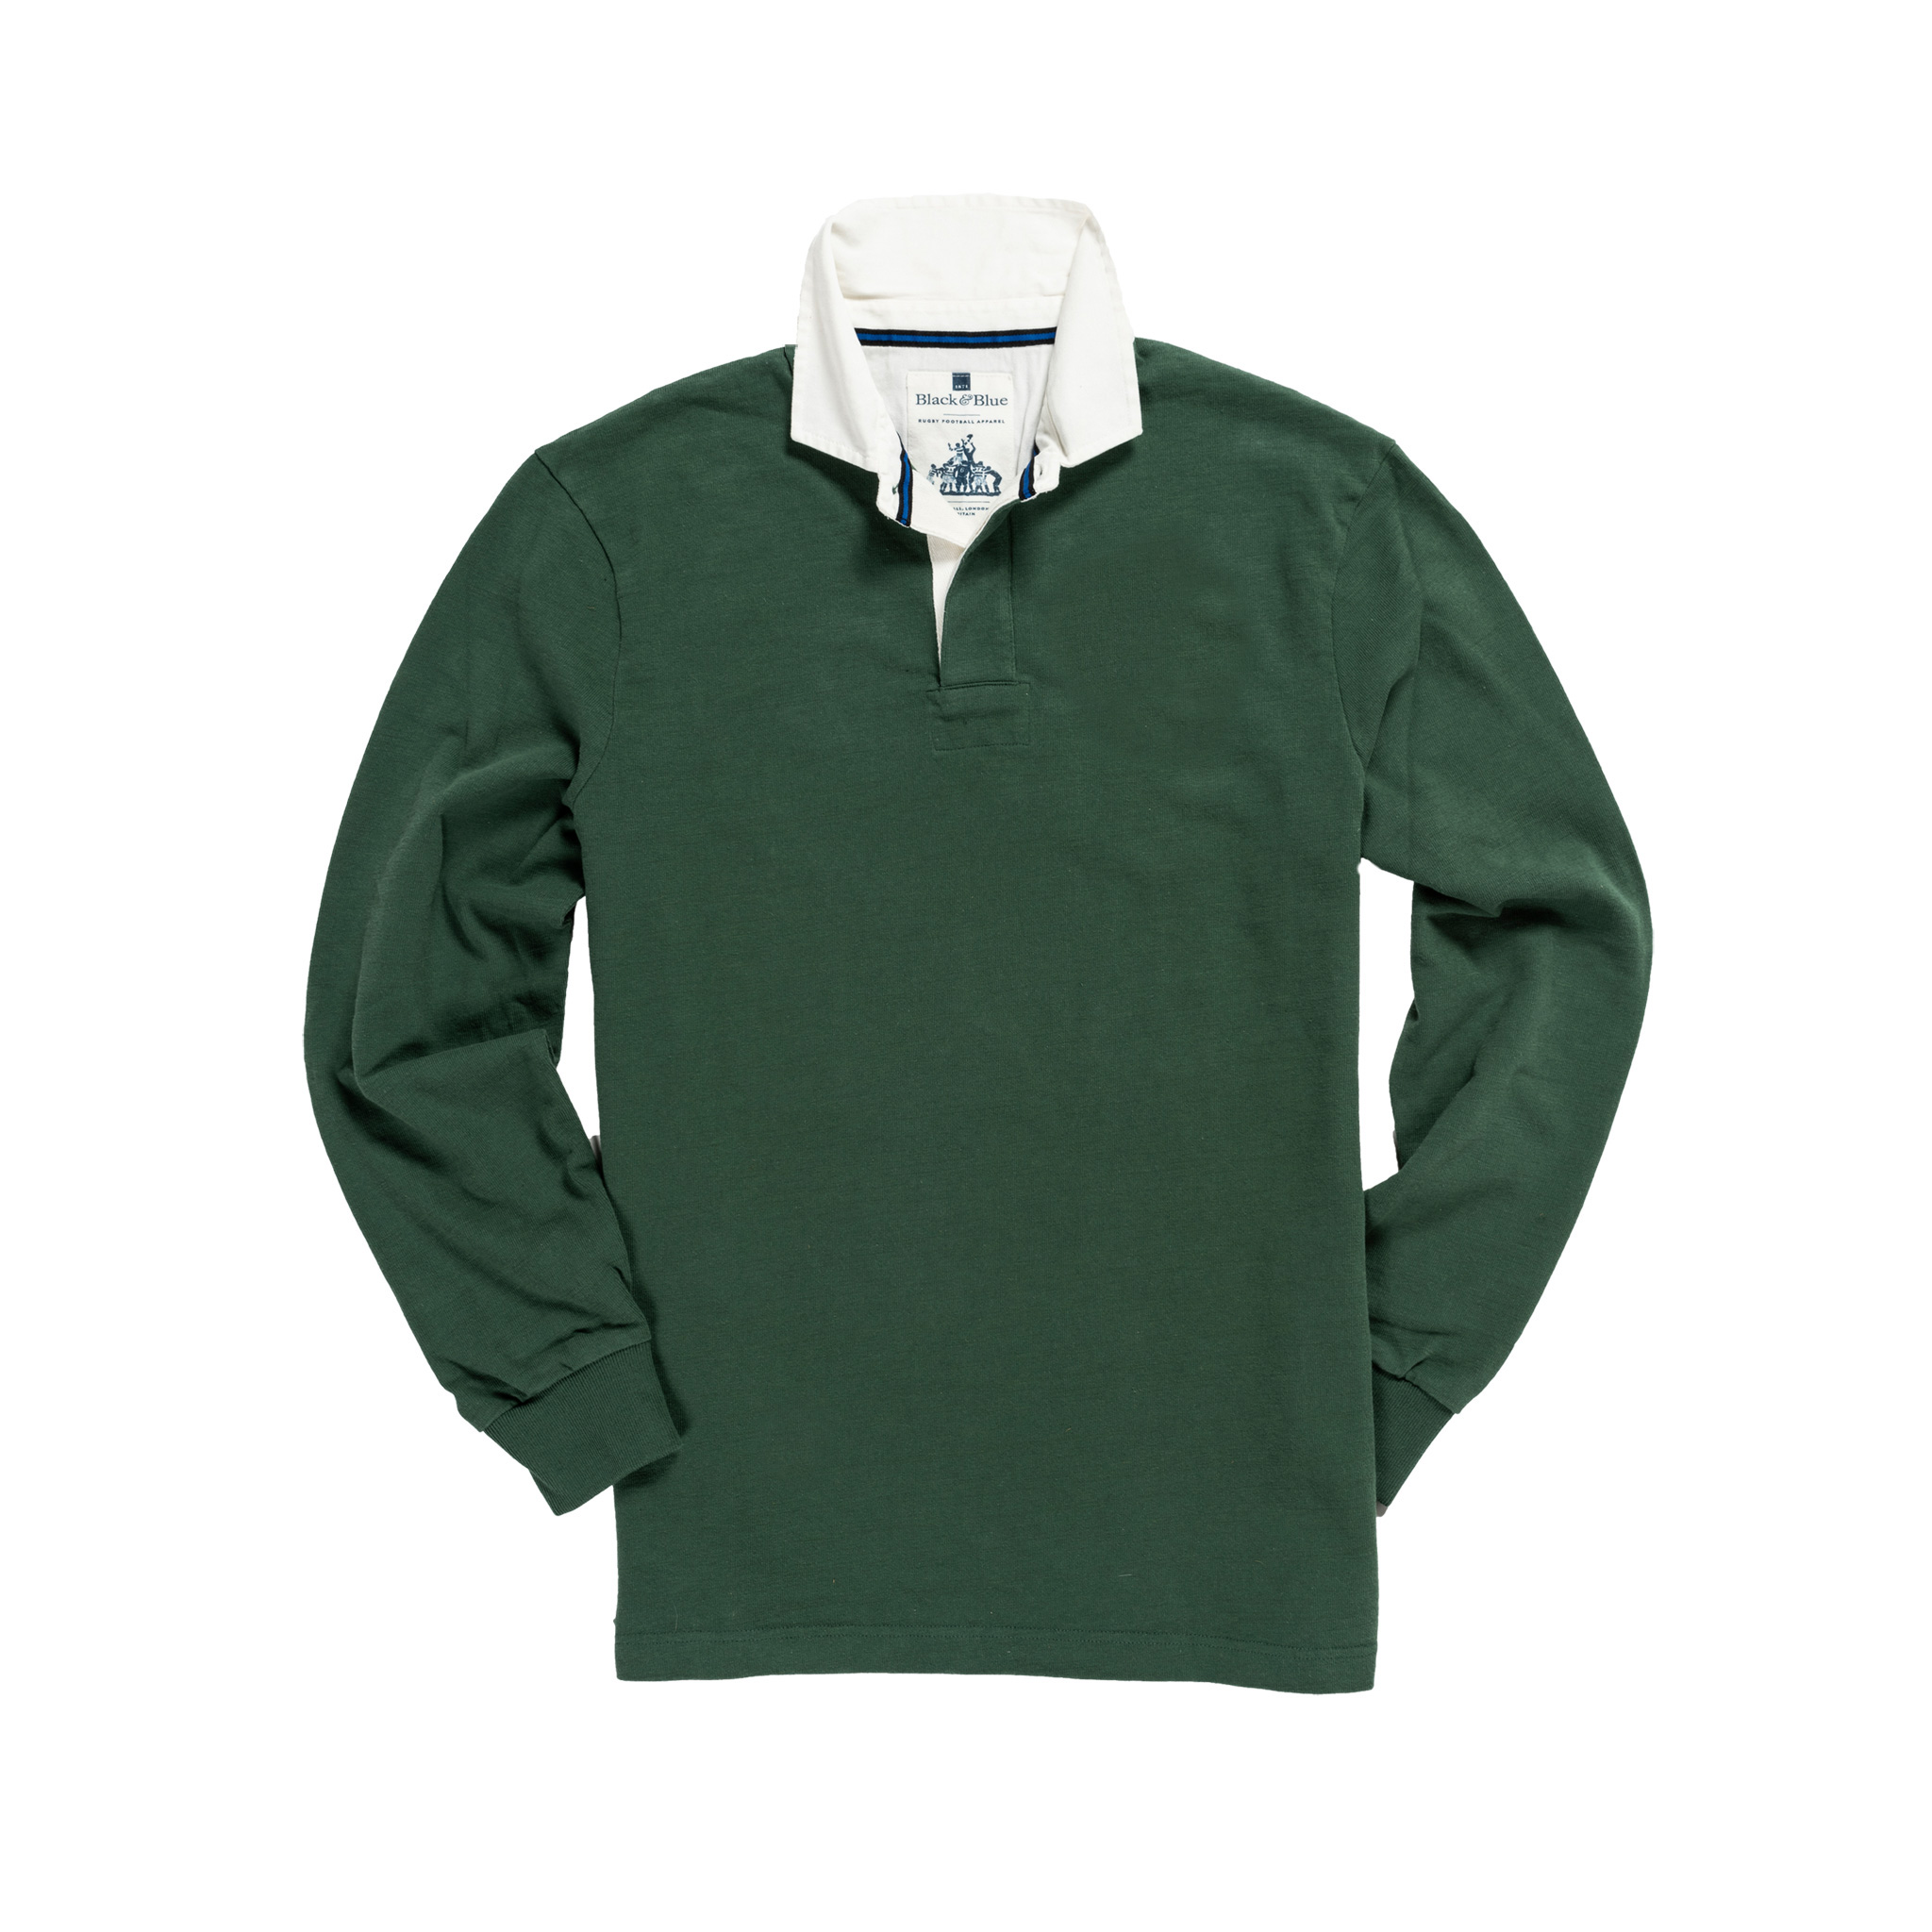 Classic Green 1871 Vintage Rugby Shirt